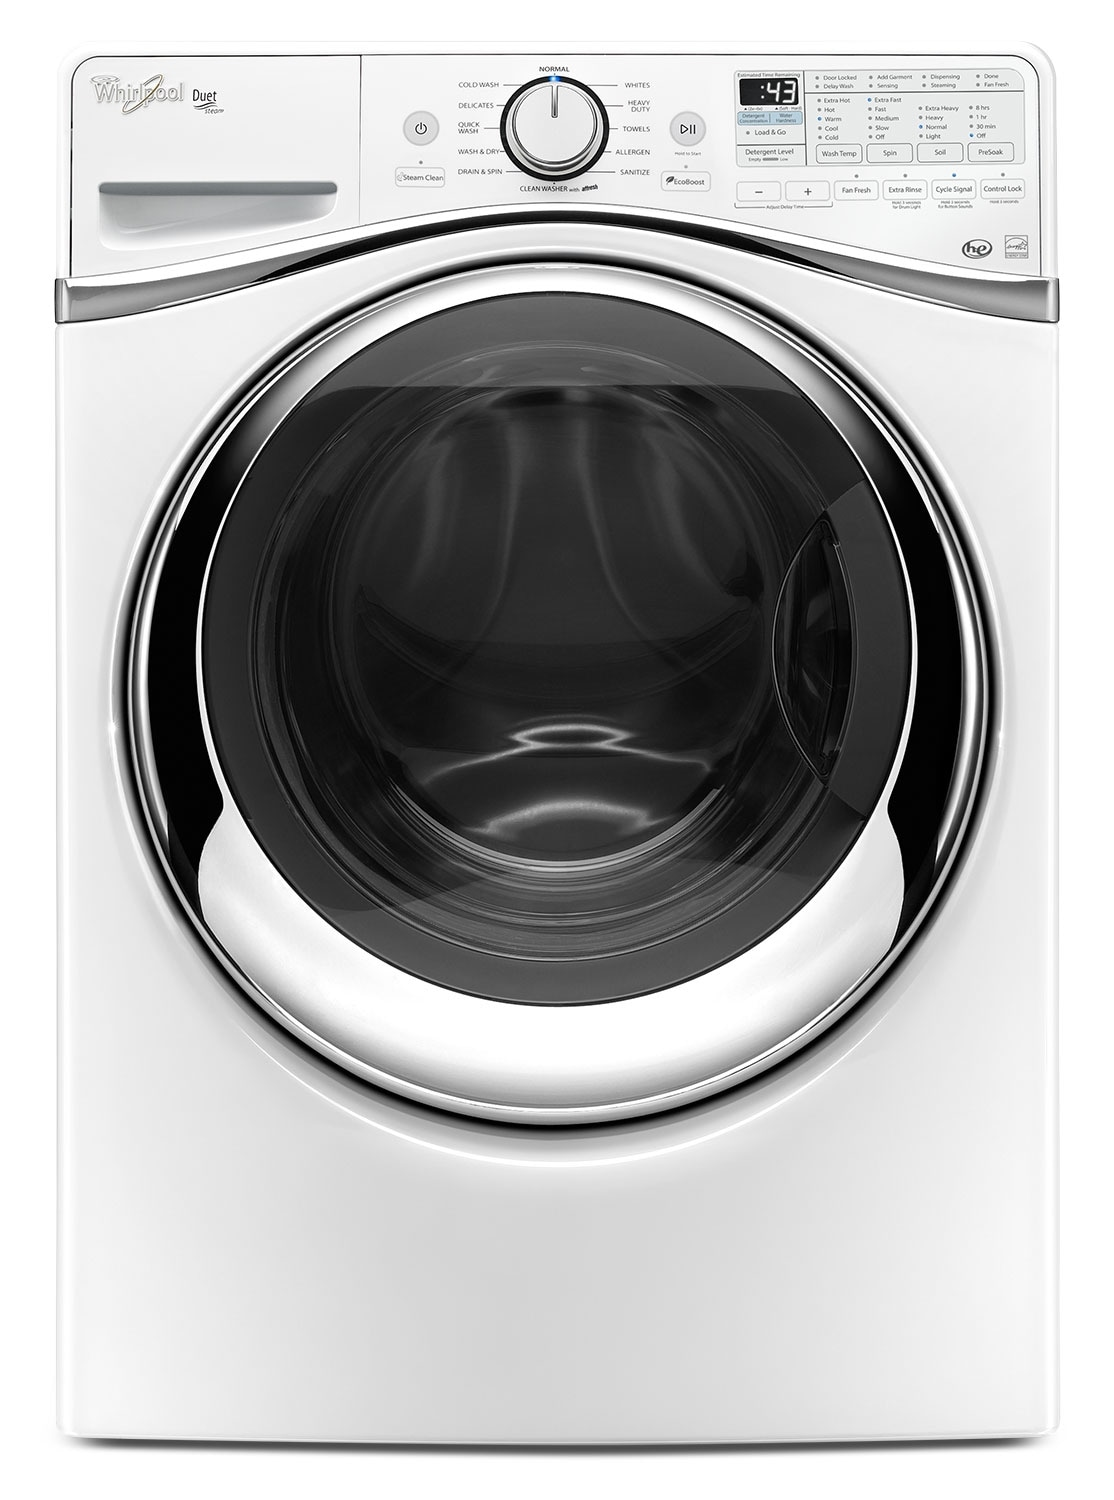 Washers and Dryers - Whirlpool White Front-Load Washer (5.2 Cu. Ft. IEC) - WFW97HEDW